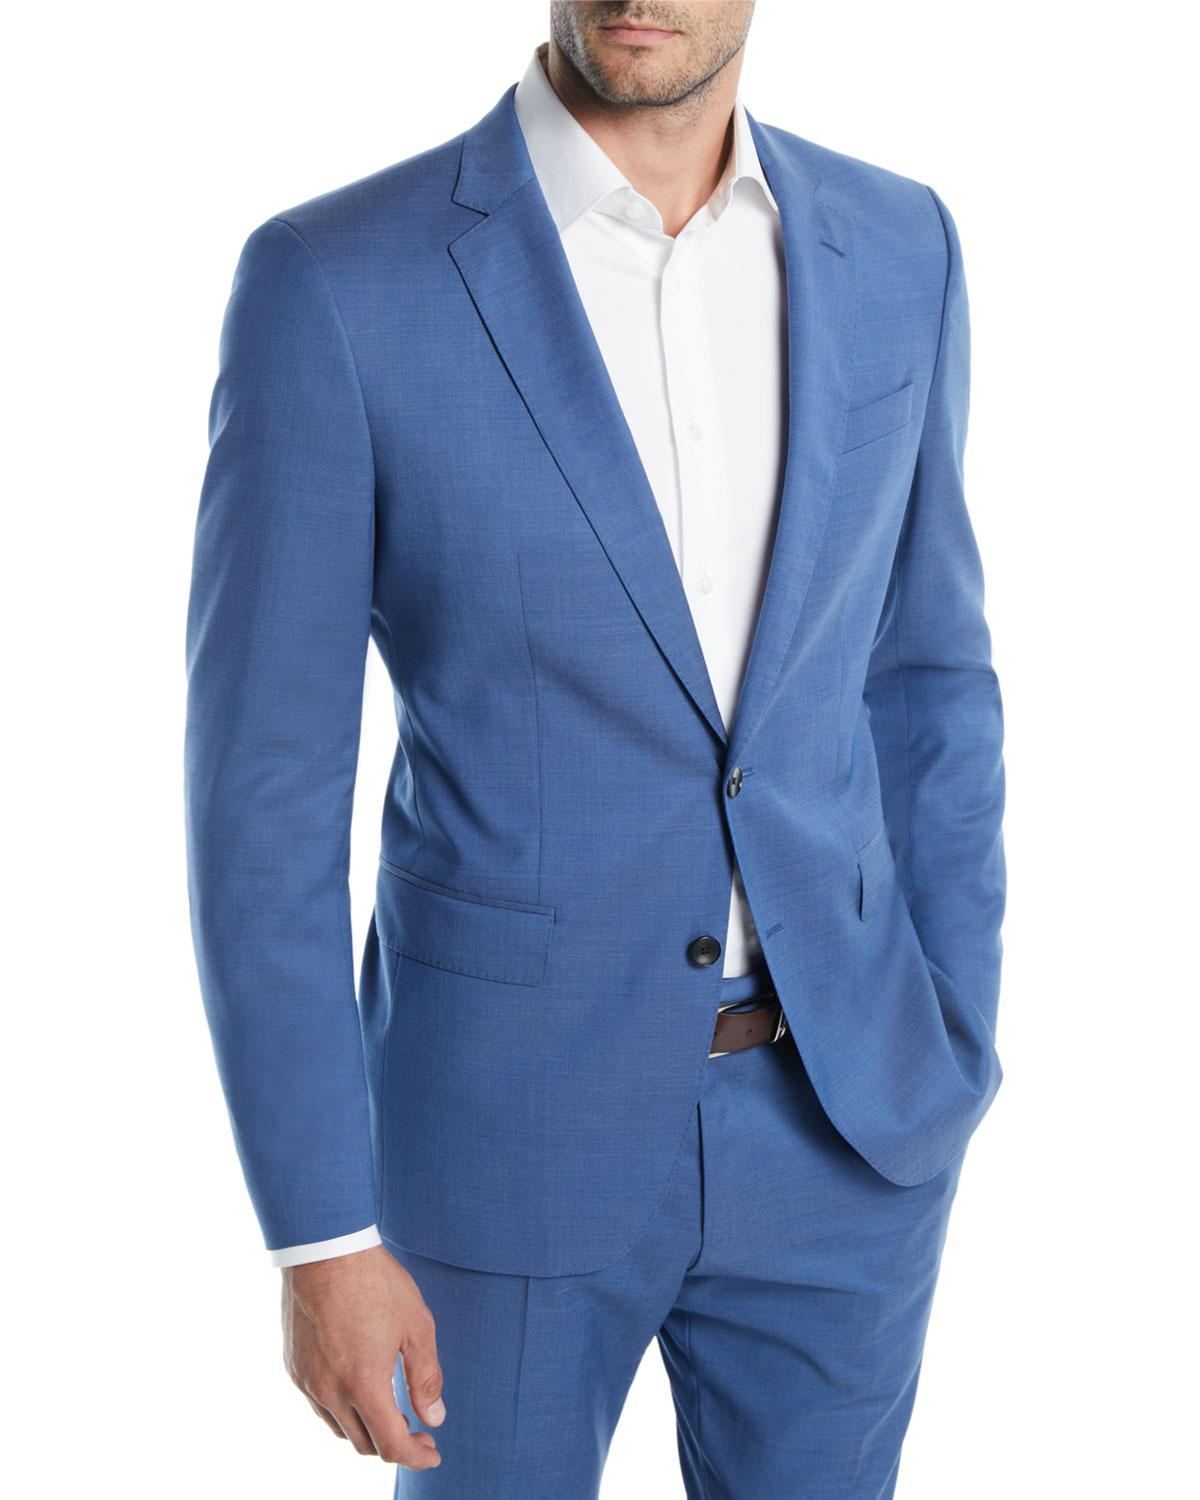 Lyst - Boss Men\'s Bright Solid Two-piece Wool Suit in Blue for Men